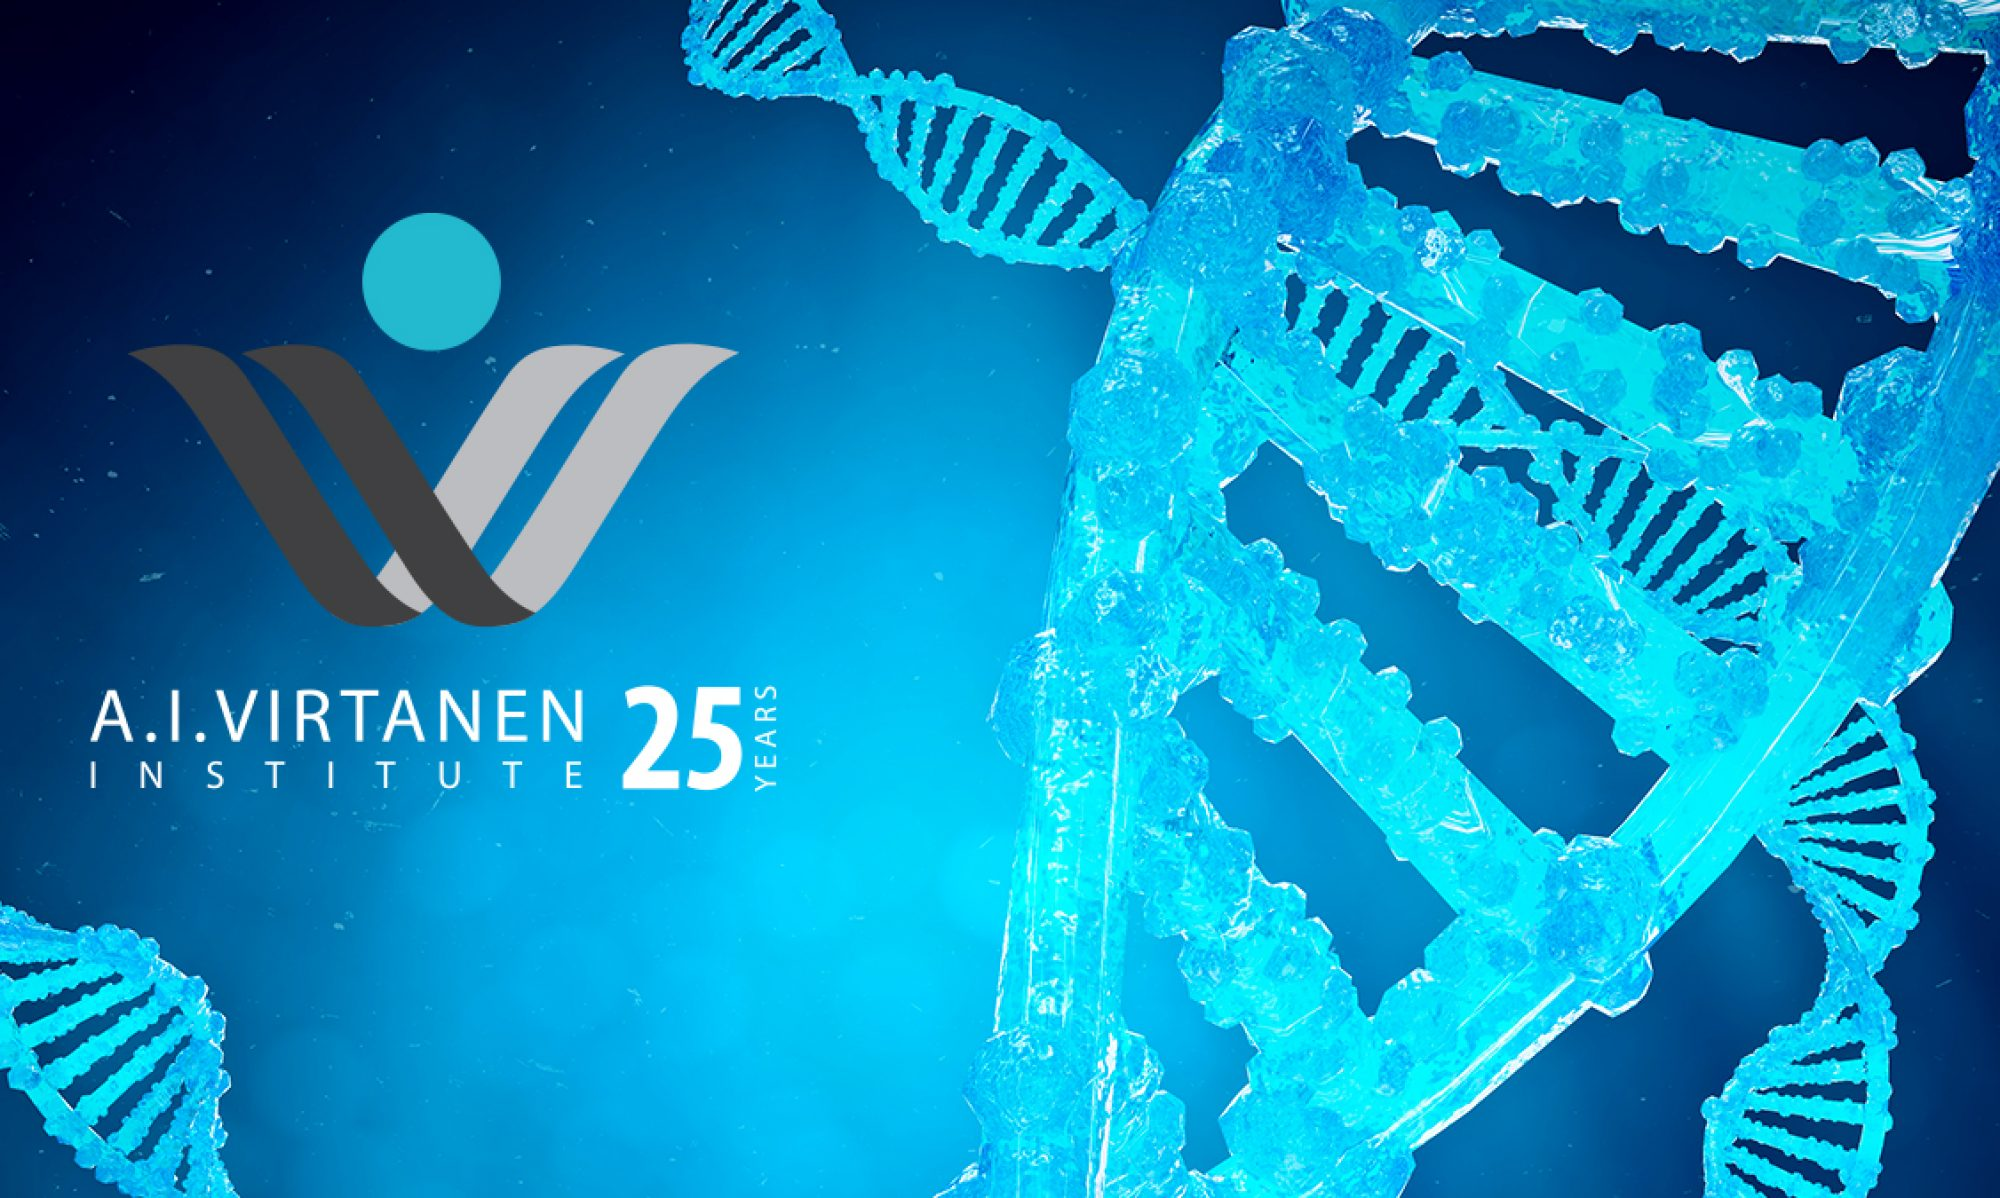 A.I. Virtanen Institute - Biomedical Research for 25 years